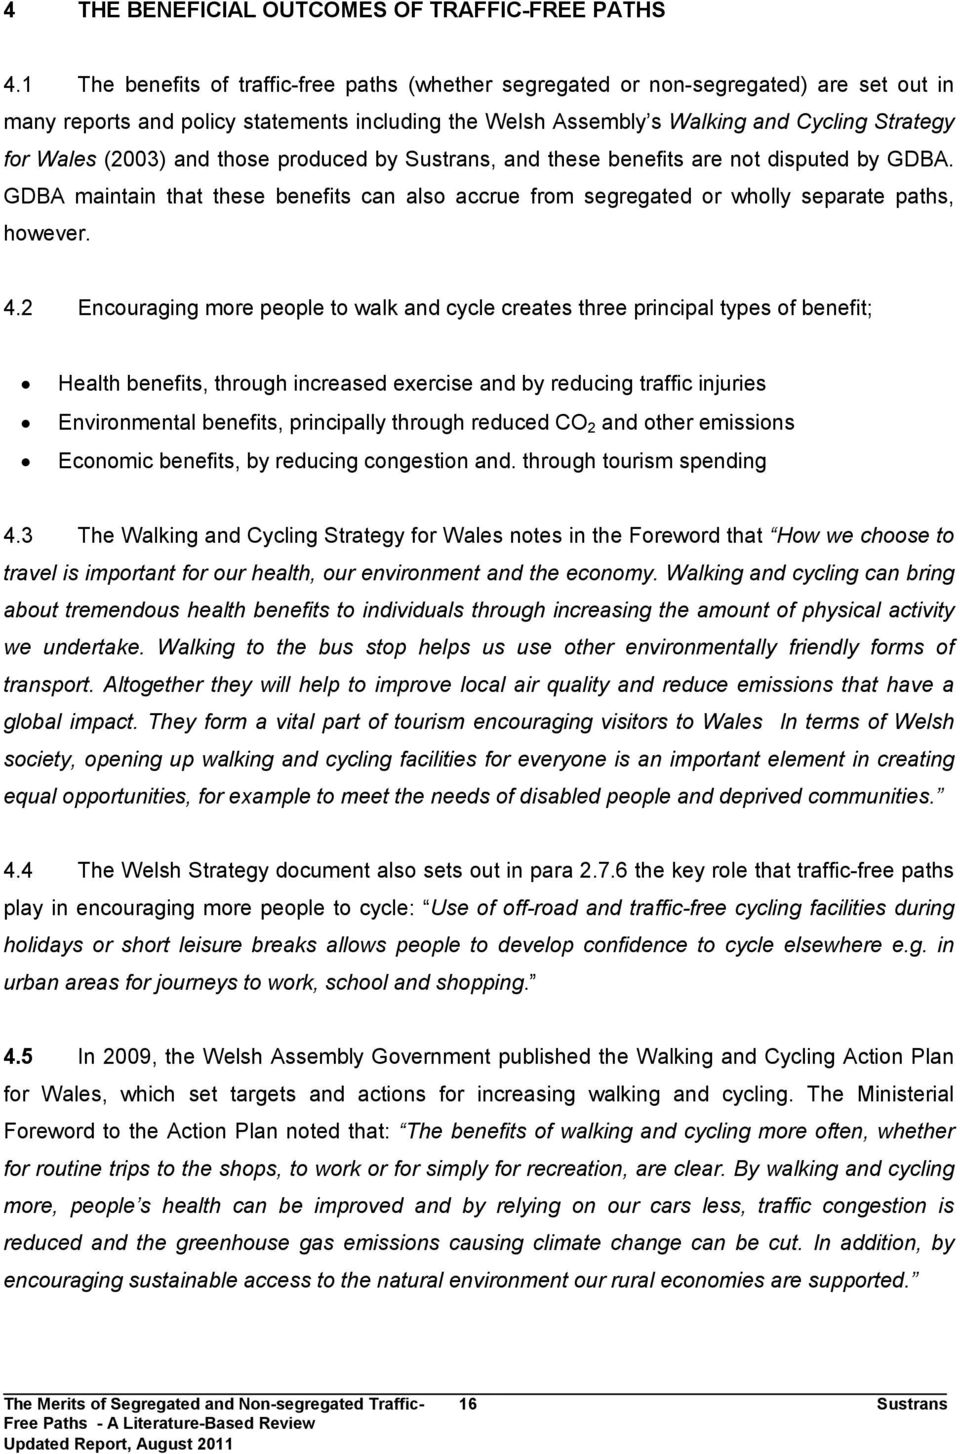 (2003) and those produced by Sustrans, and these benefits are not disputed by GDBA. GDBA maintain that these benefits can also accrue from segregated or wholly separate paths, however. 4.